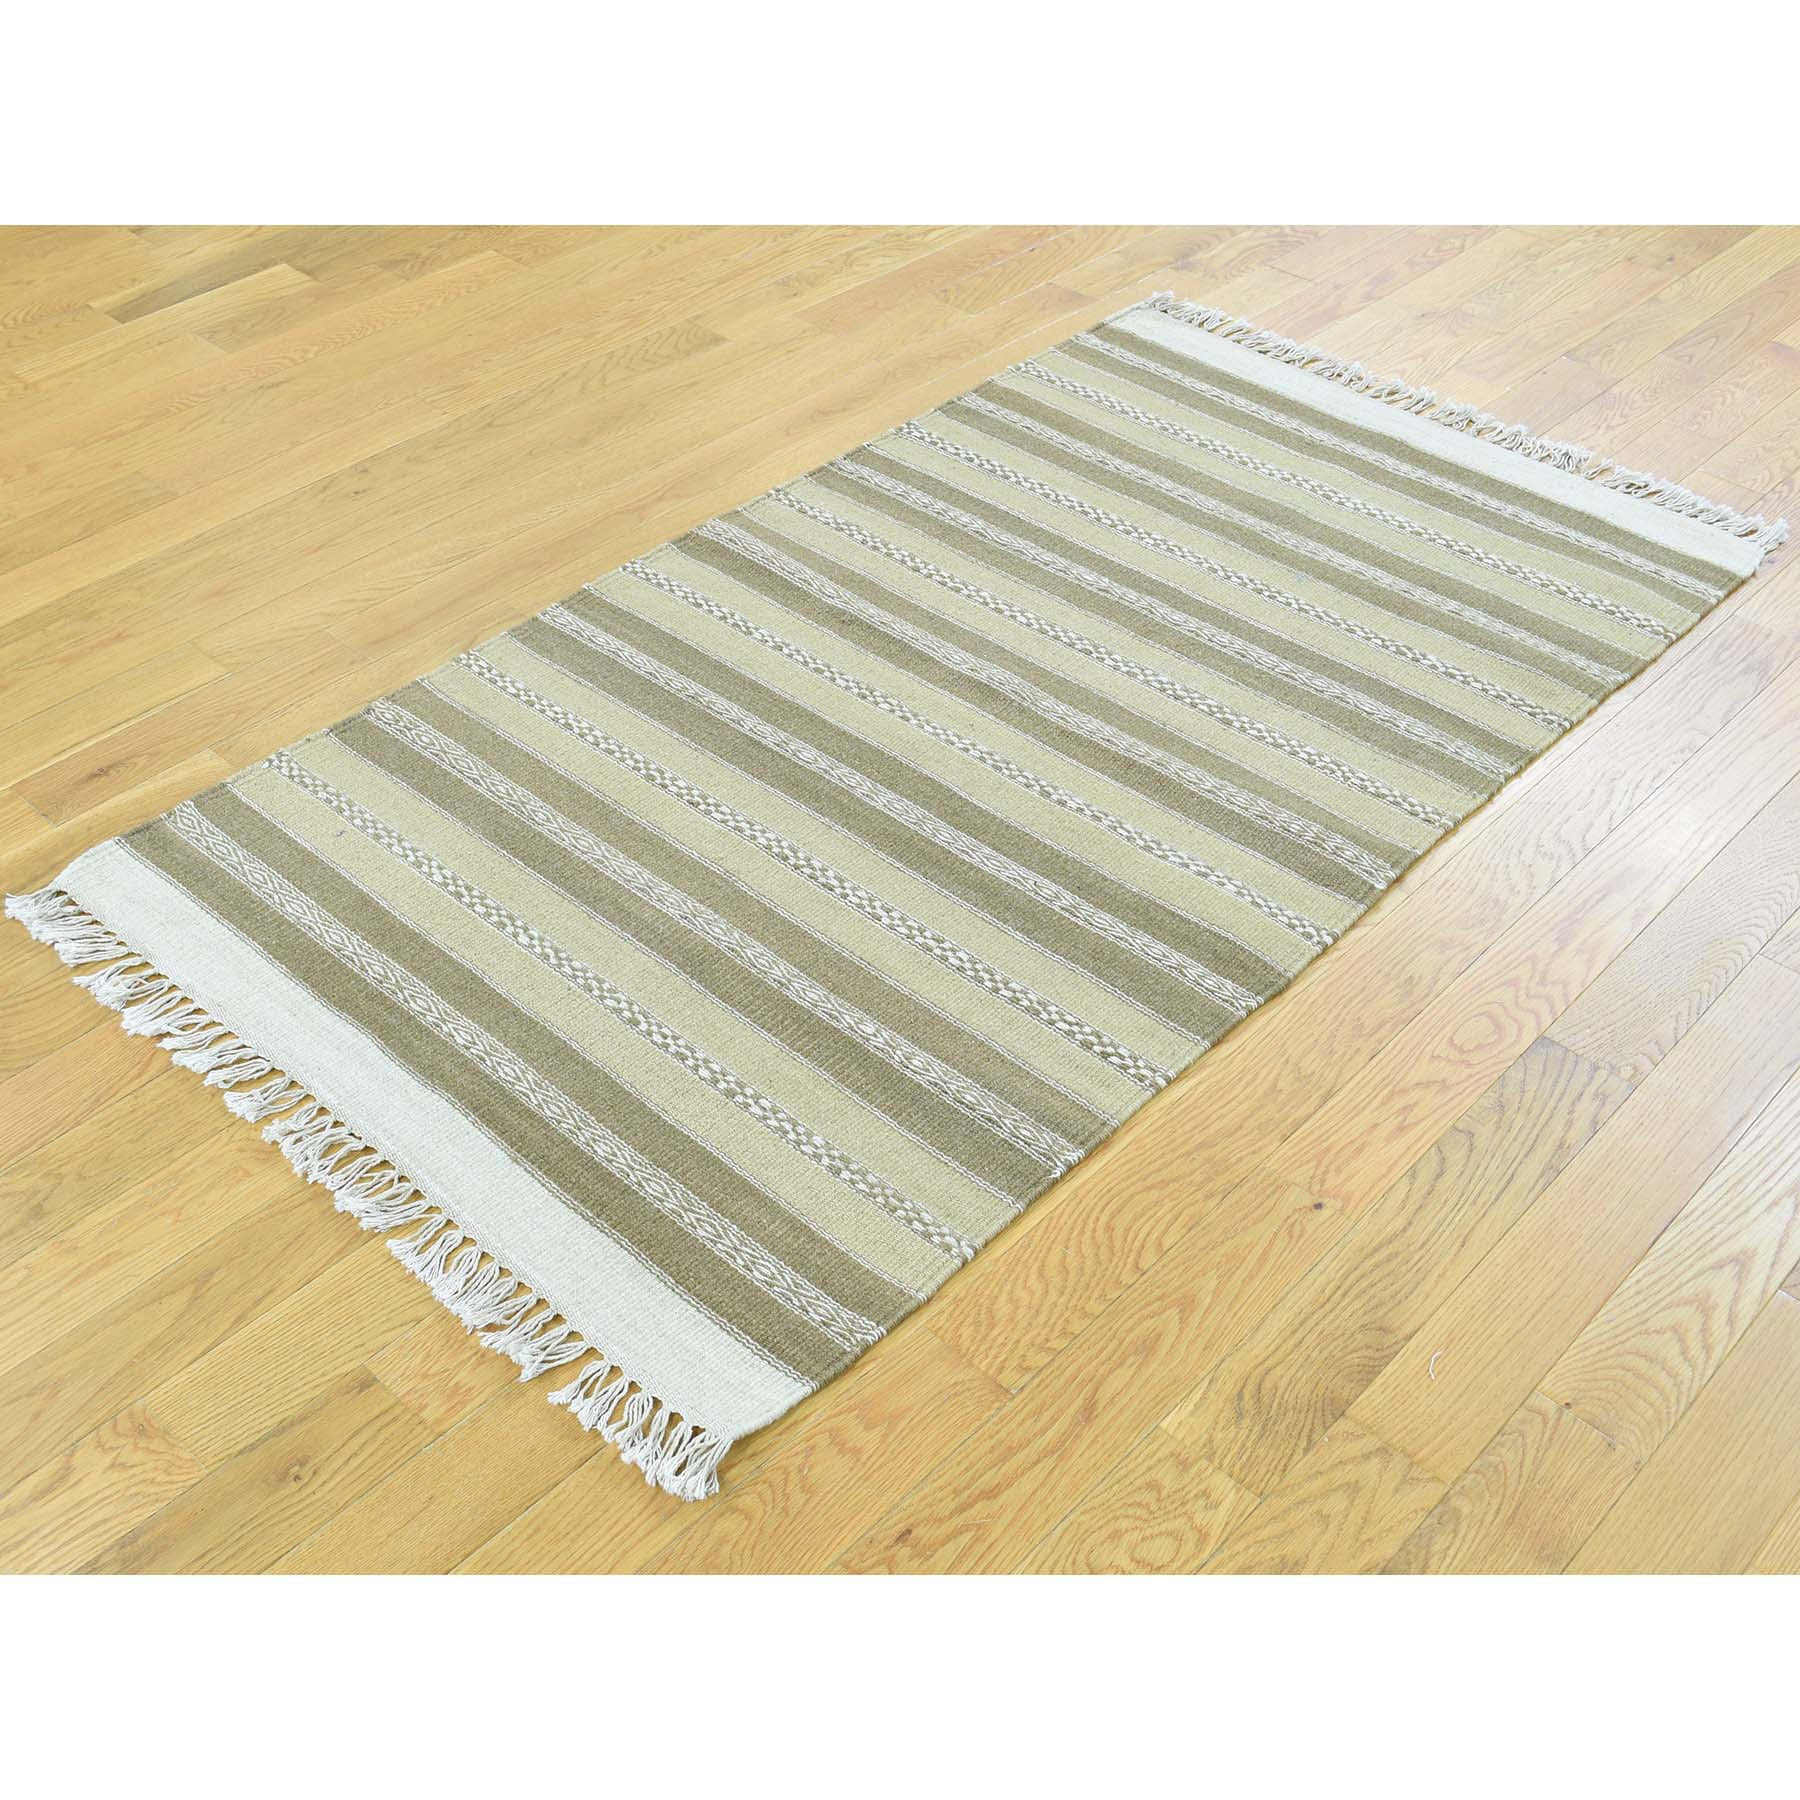 "Handmade Flat Weave Rectangle Rug > Design# SH31842 > Size: 2'-9"" x 4'-10"" [ONLINE ONLY]"